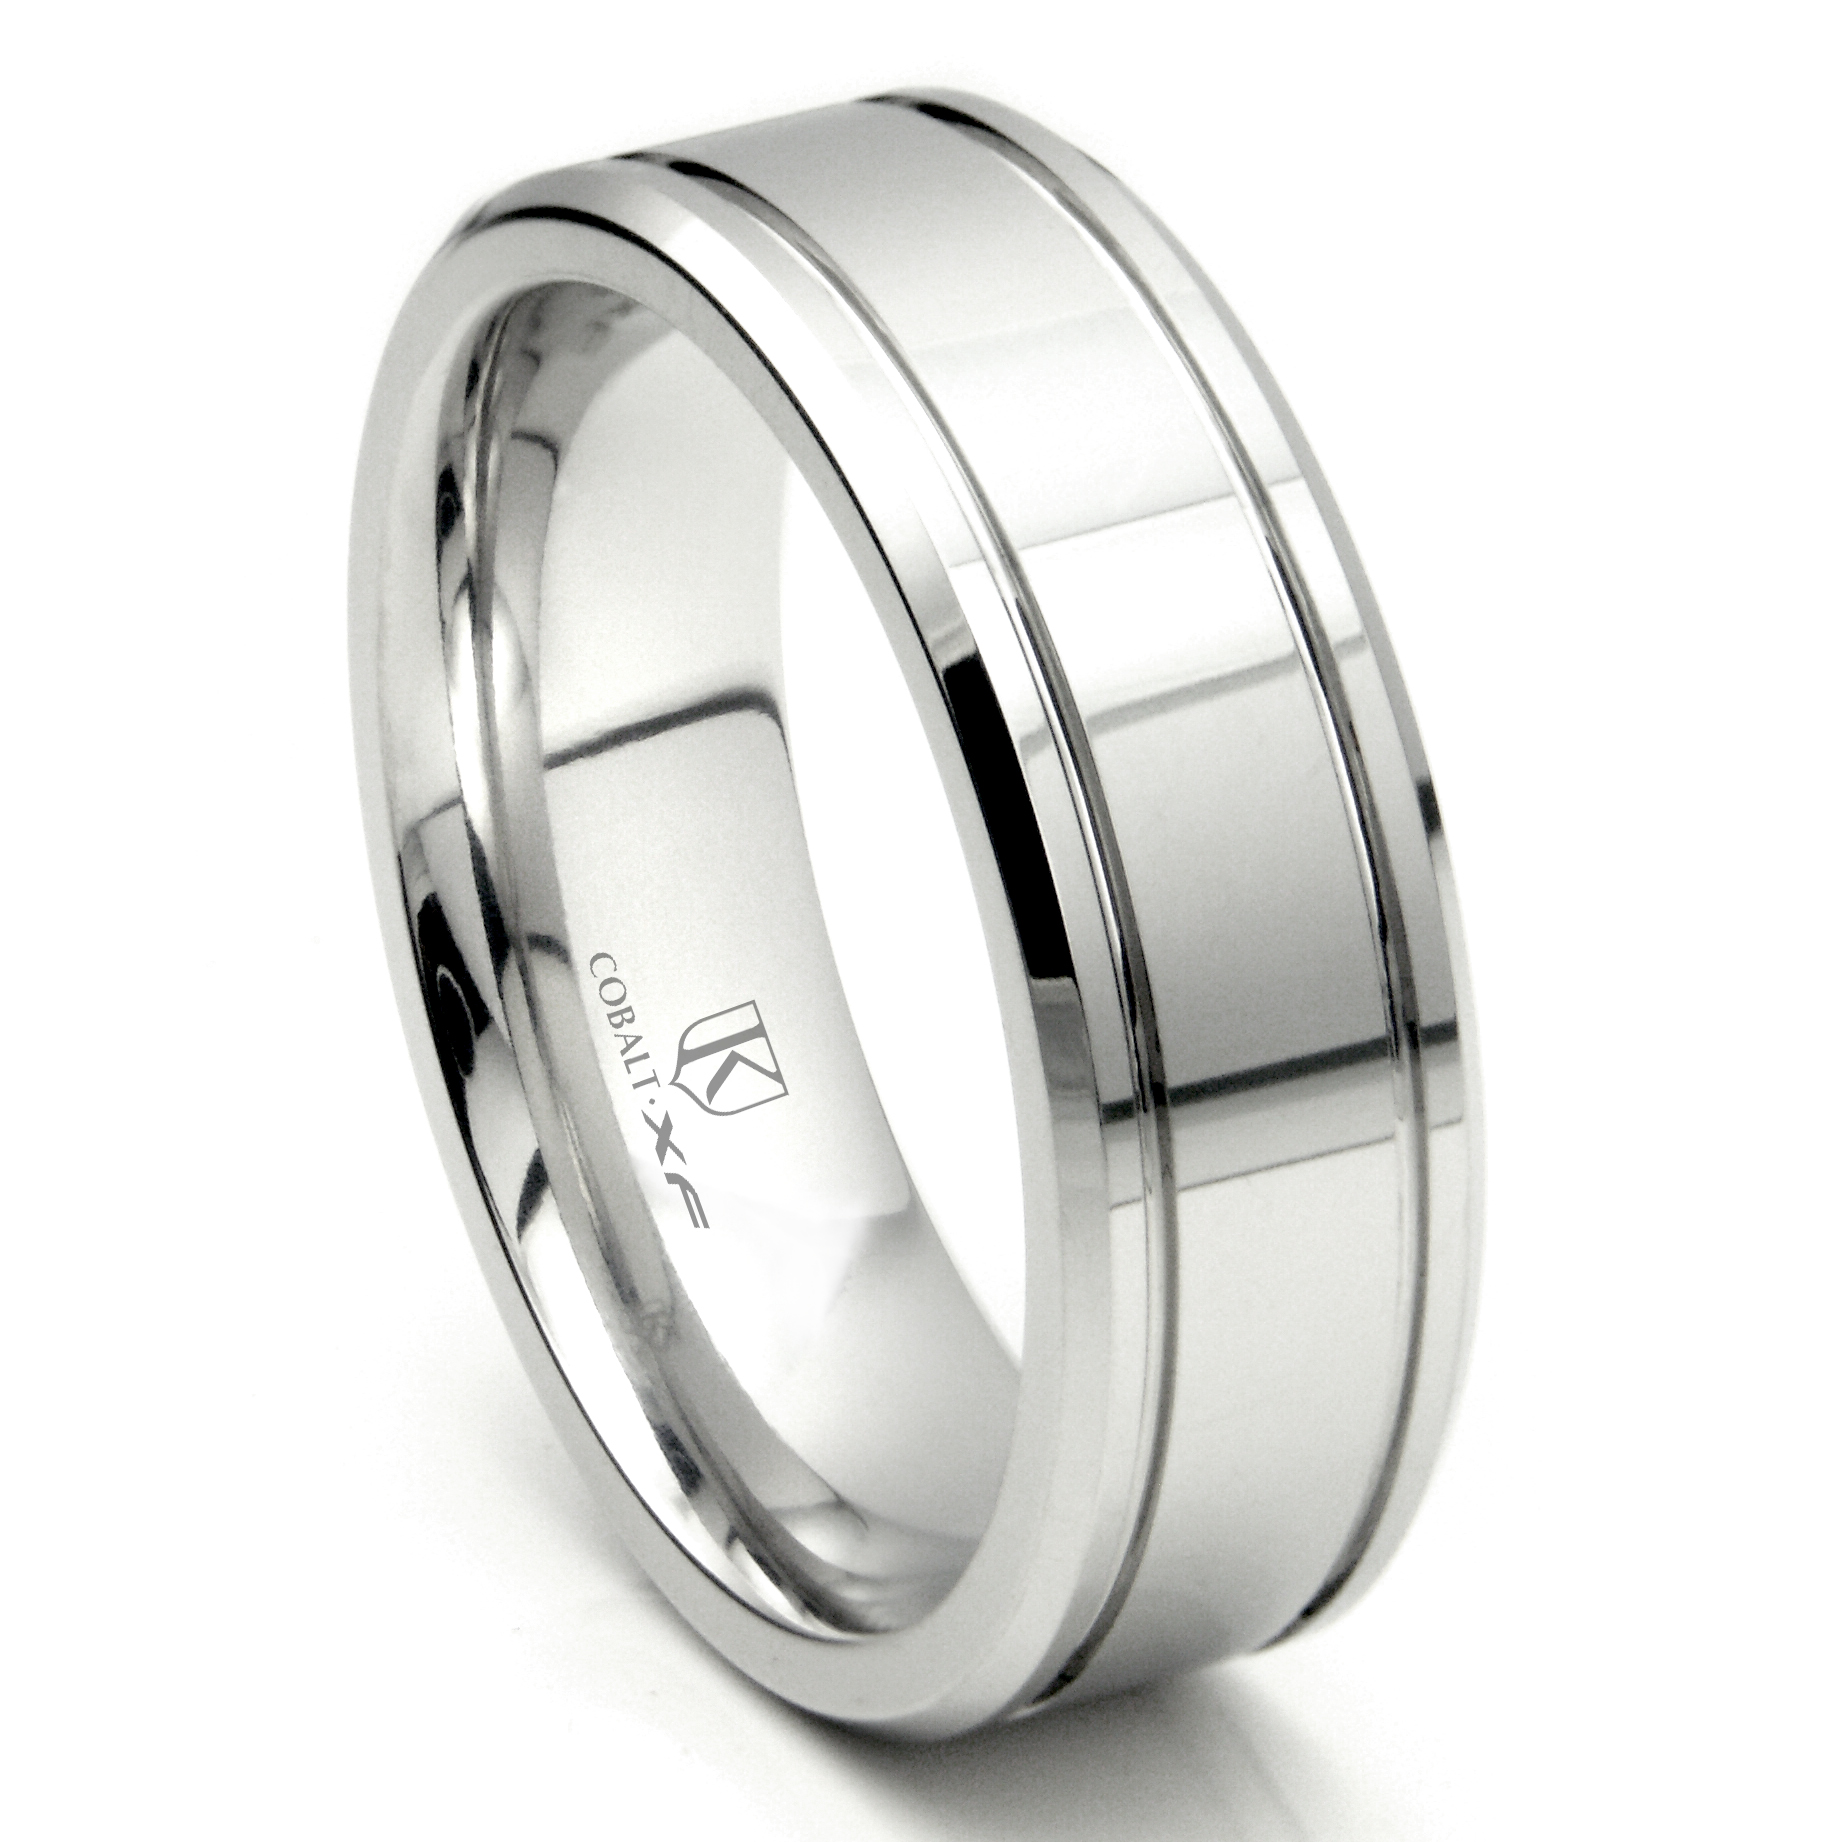 cobalt xf chrome 8mm double groove high polish wedding band ring - Cobalt Wedding Rings